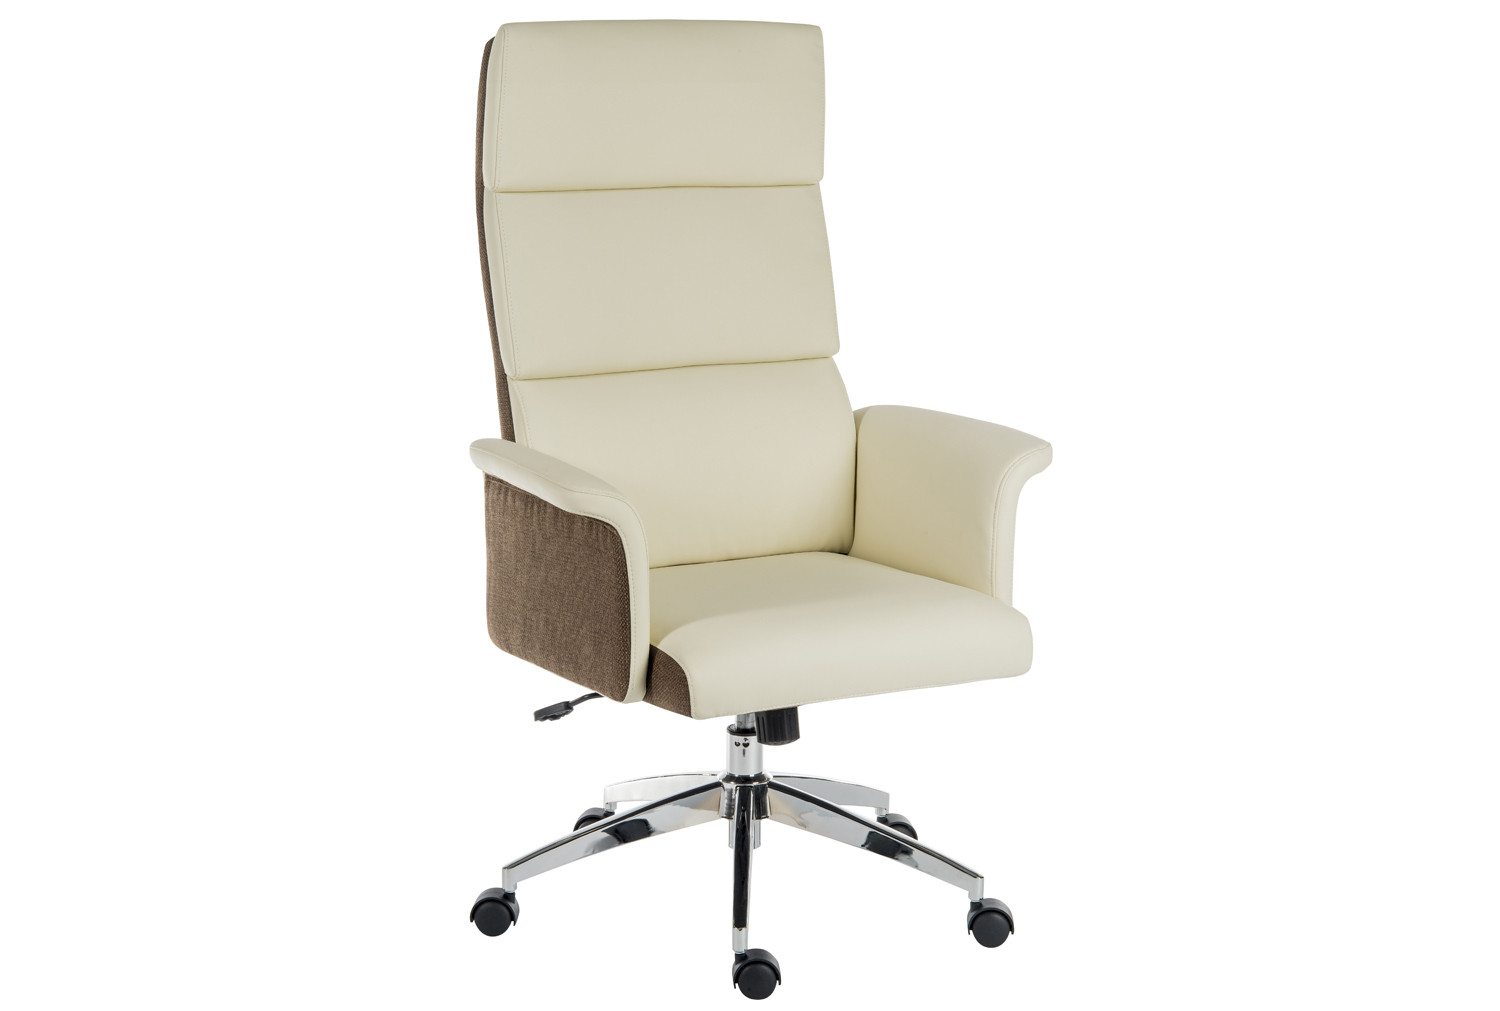 Panache High Back Executive Leather Look Chair Cream